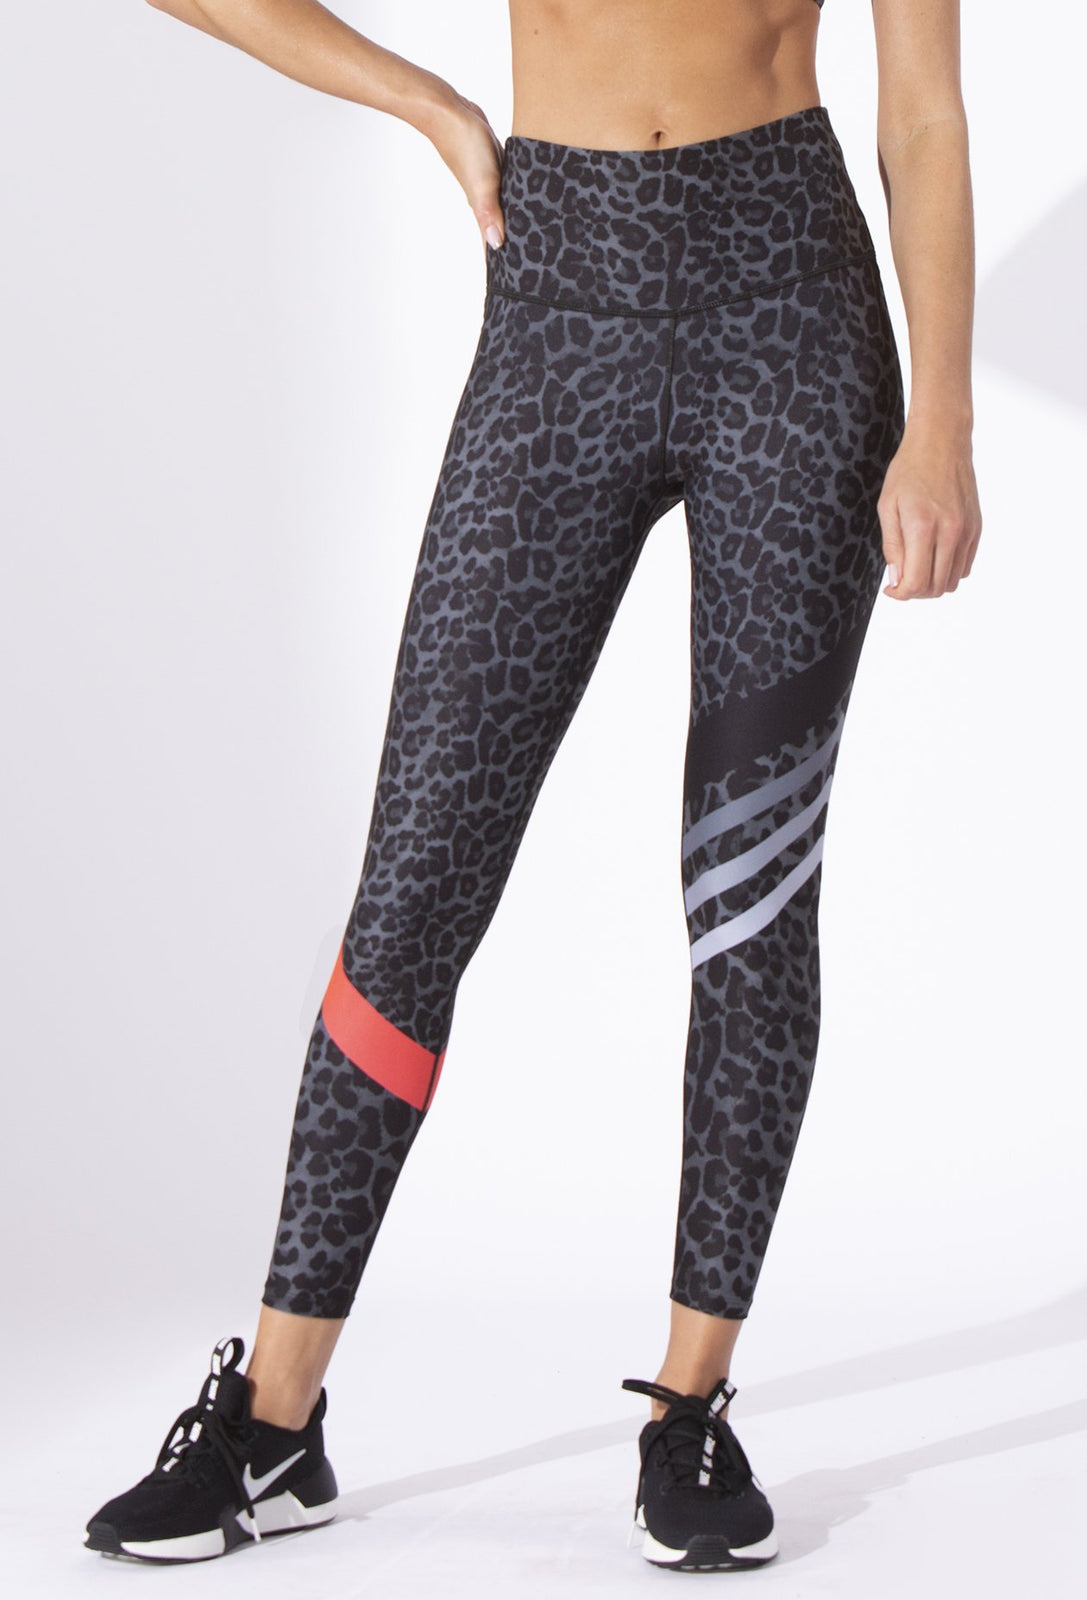 Black Lucky Cheetah High Waist Legging